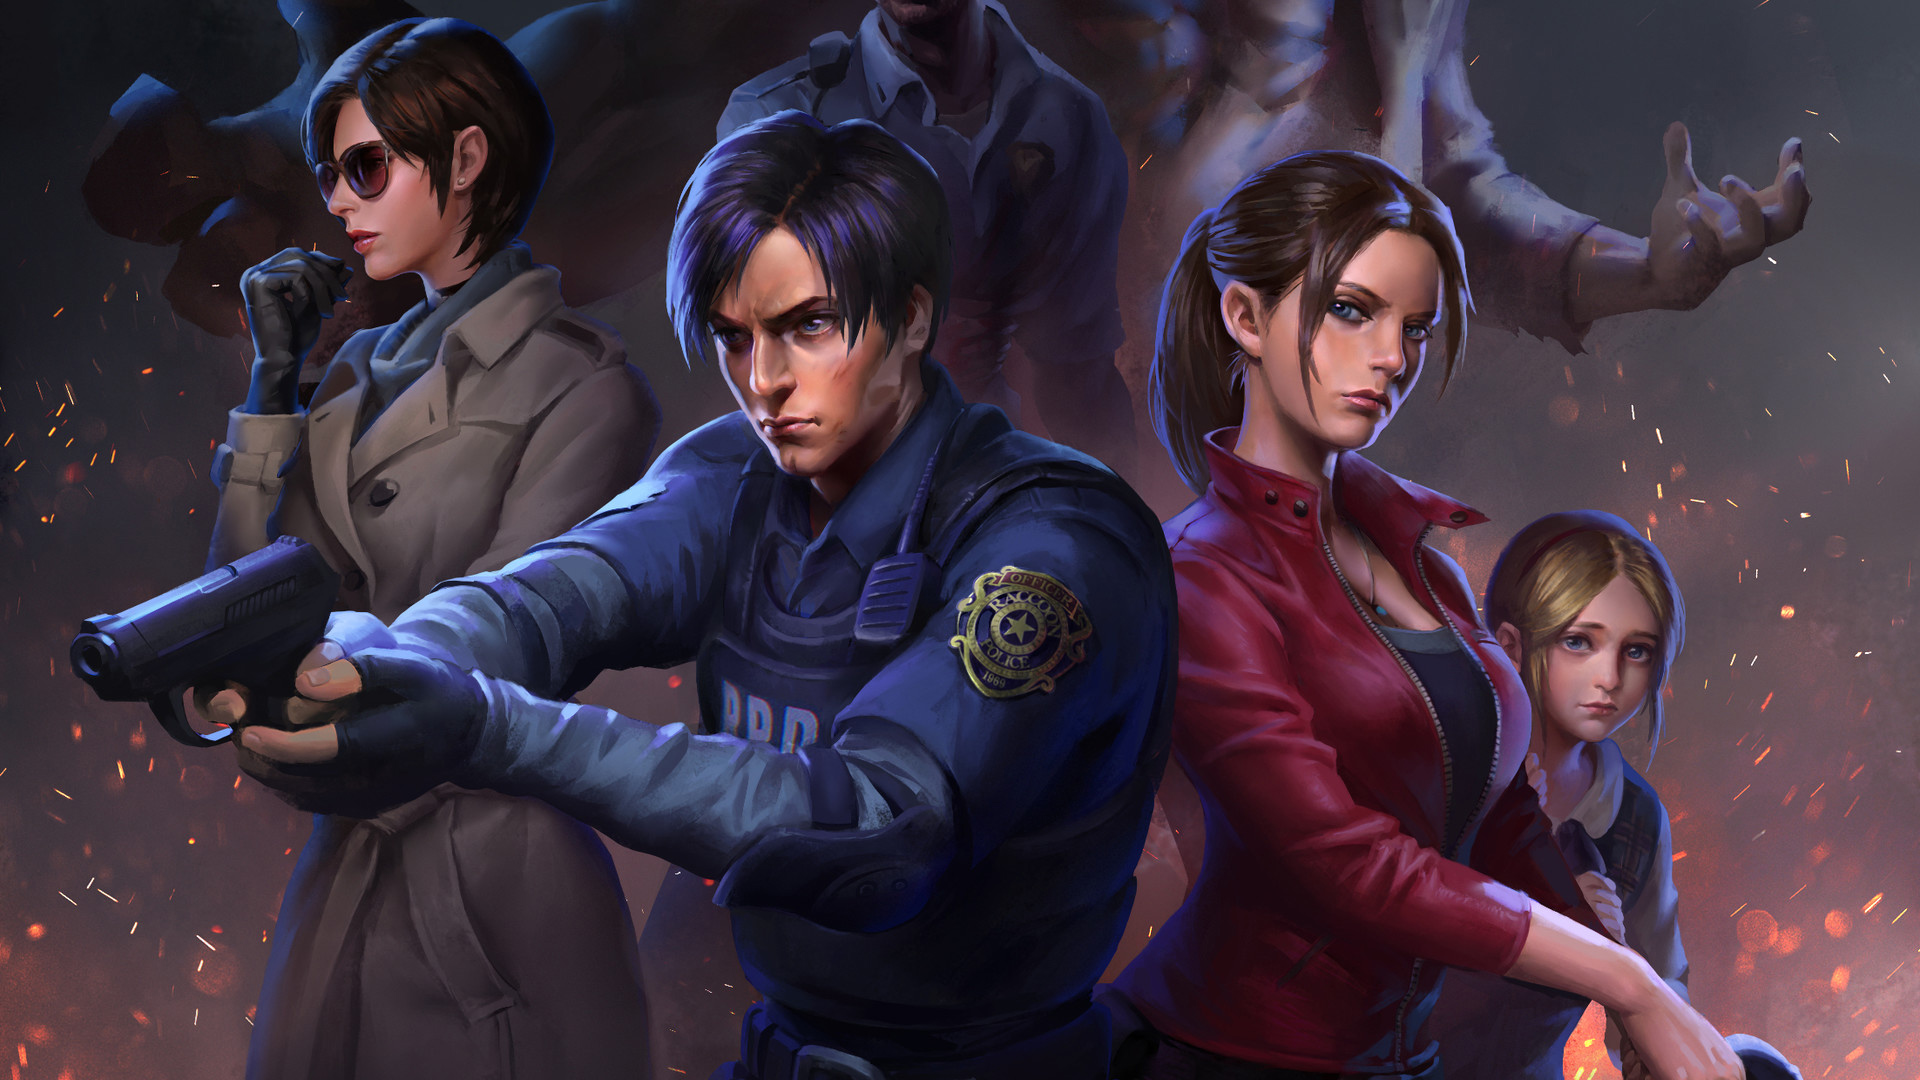 Resident Evil 2 2019 Wallpapers Pictures Images